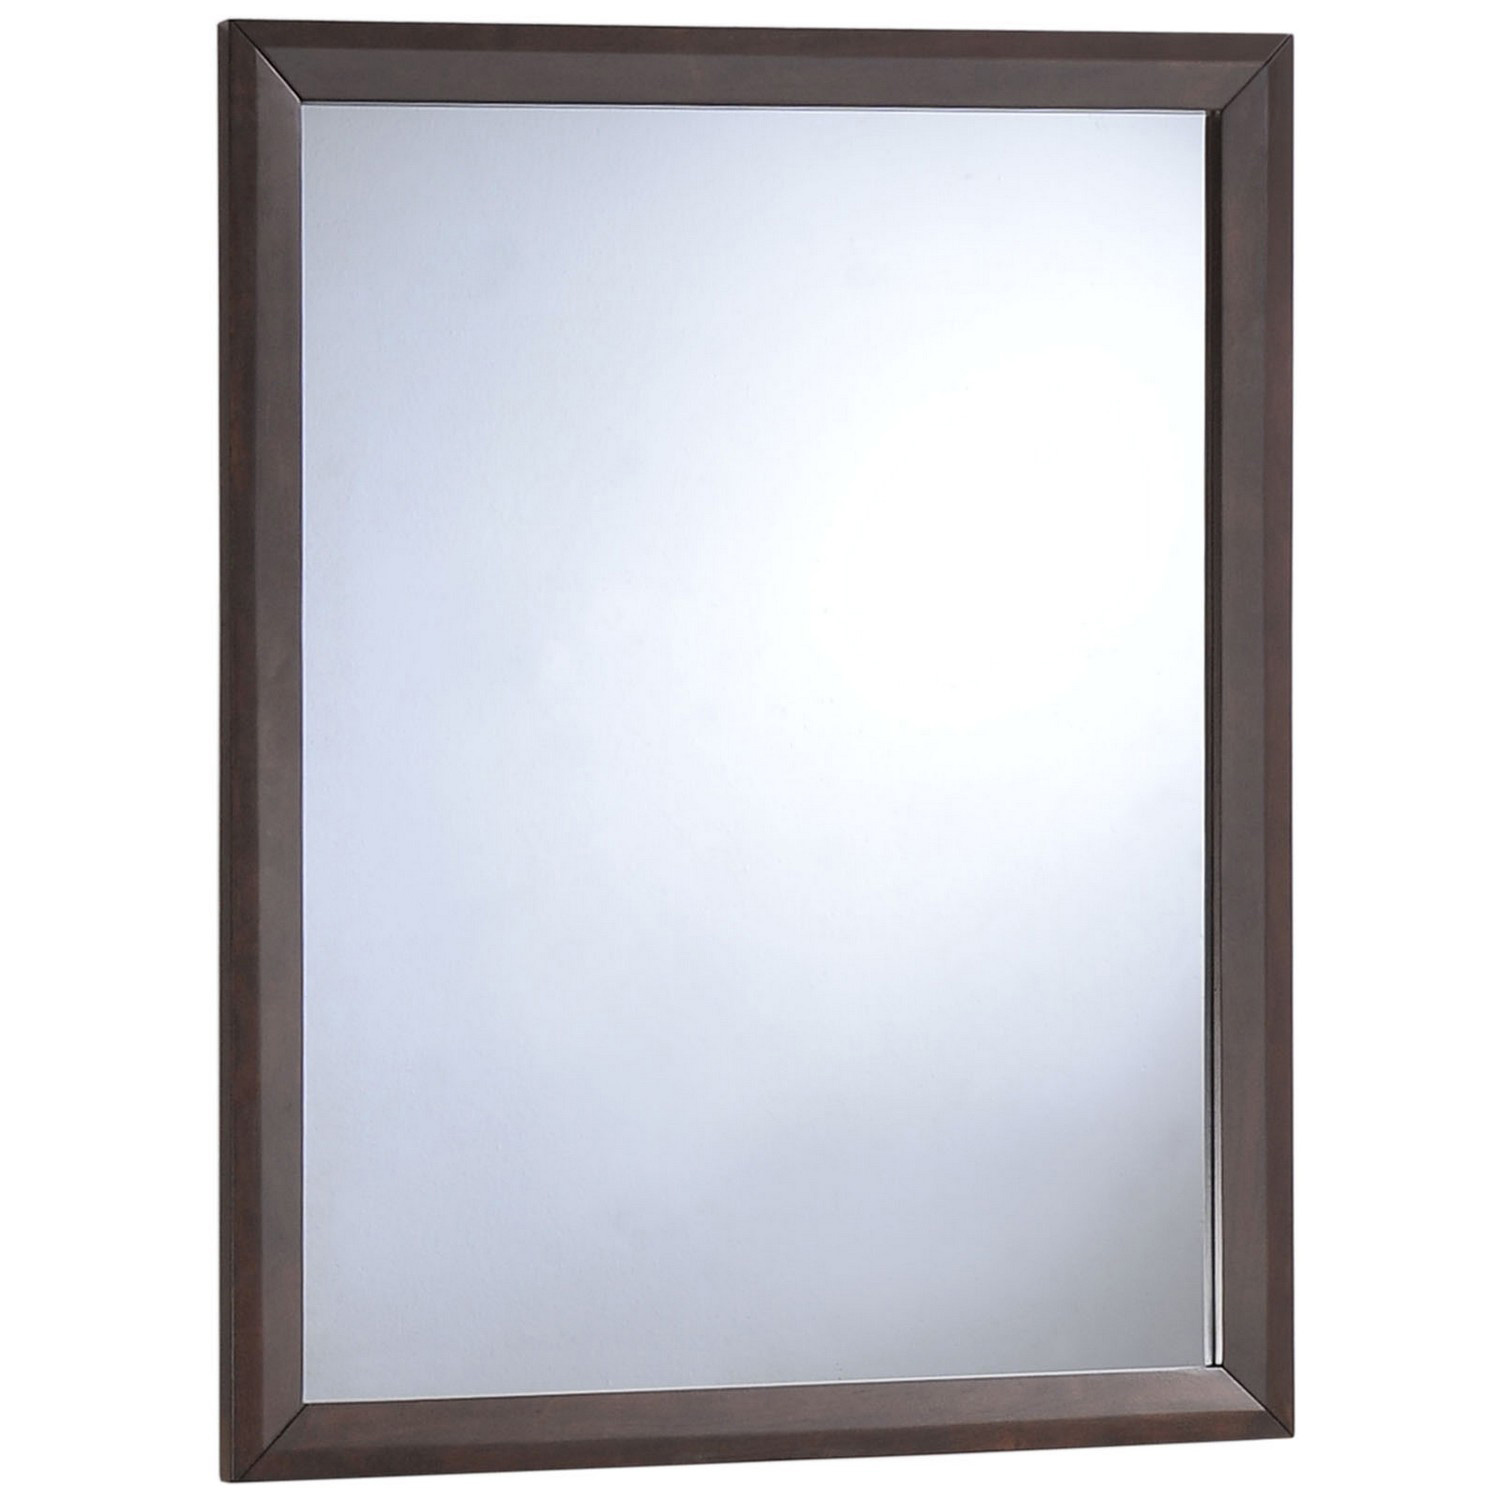 Modway Tracy Mirror - Cappuccino